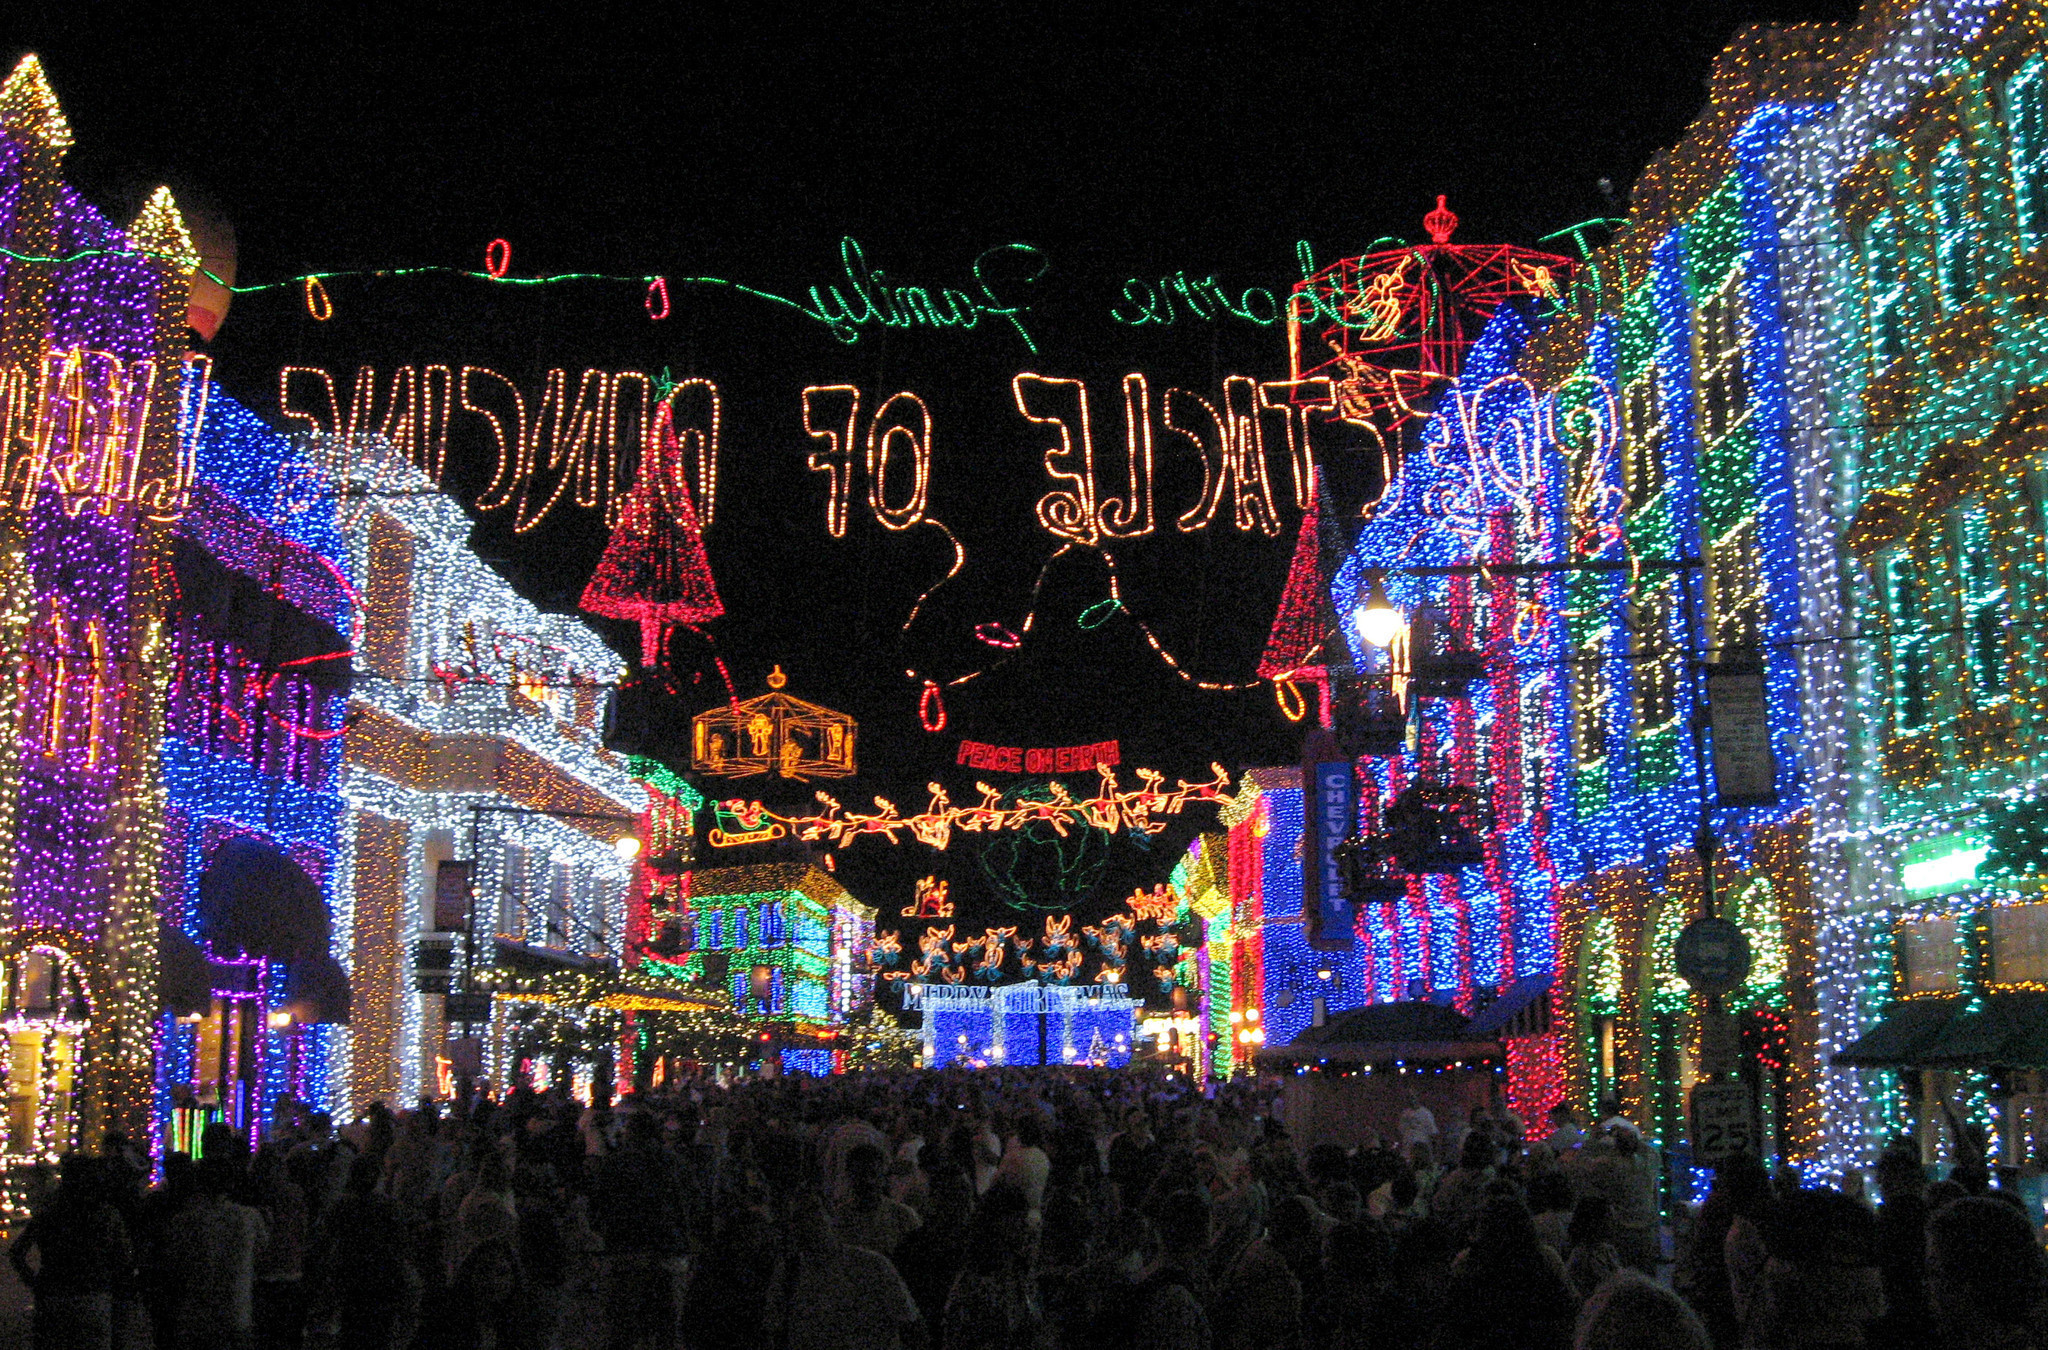 disney pulls plug on the osborne family spectacle of dancing lights orlando sentinel